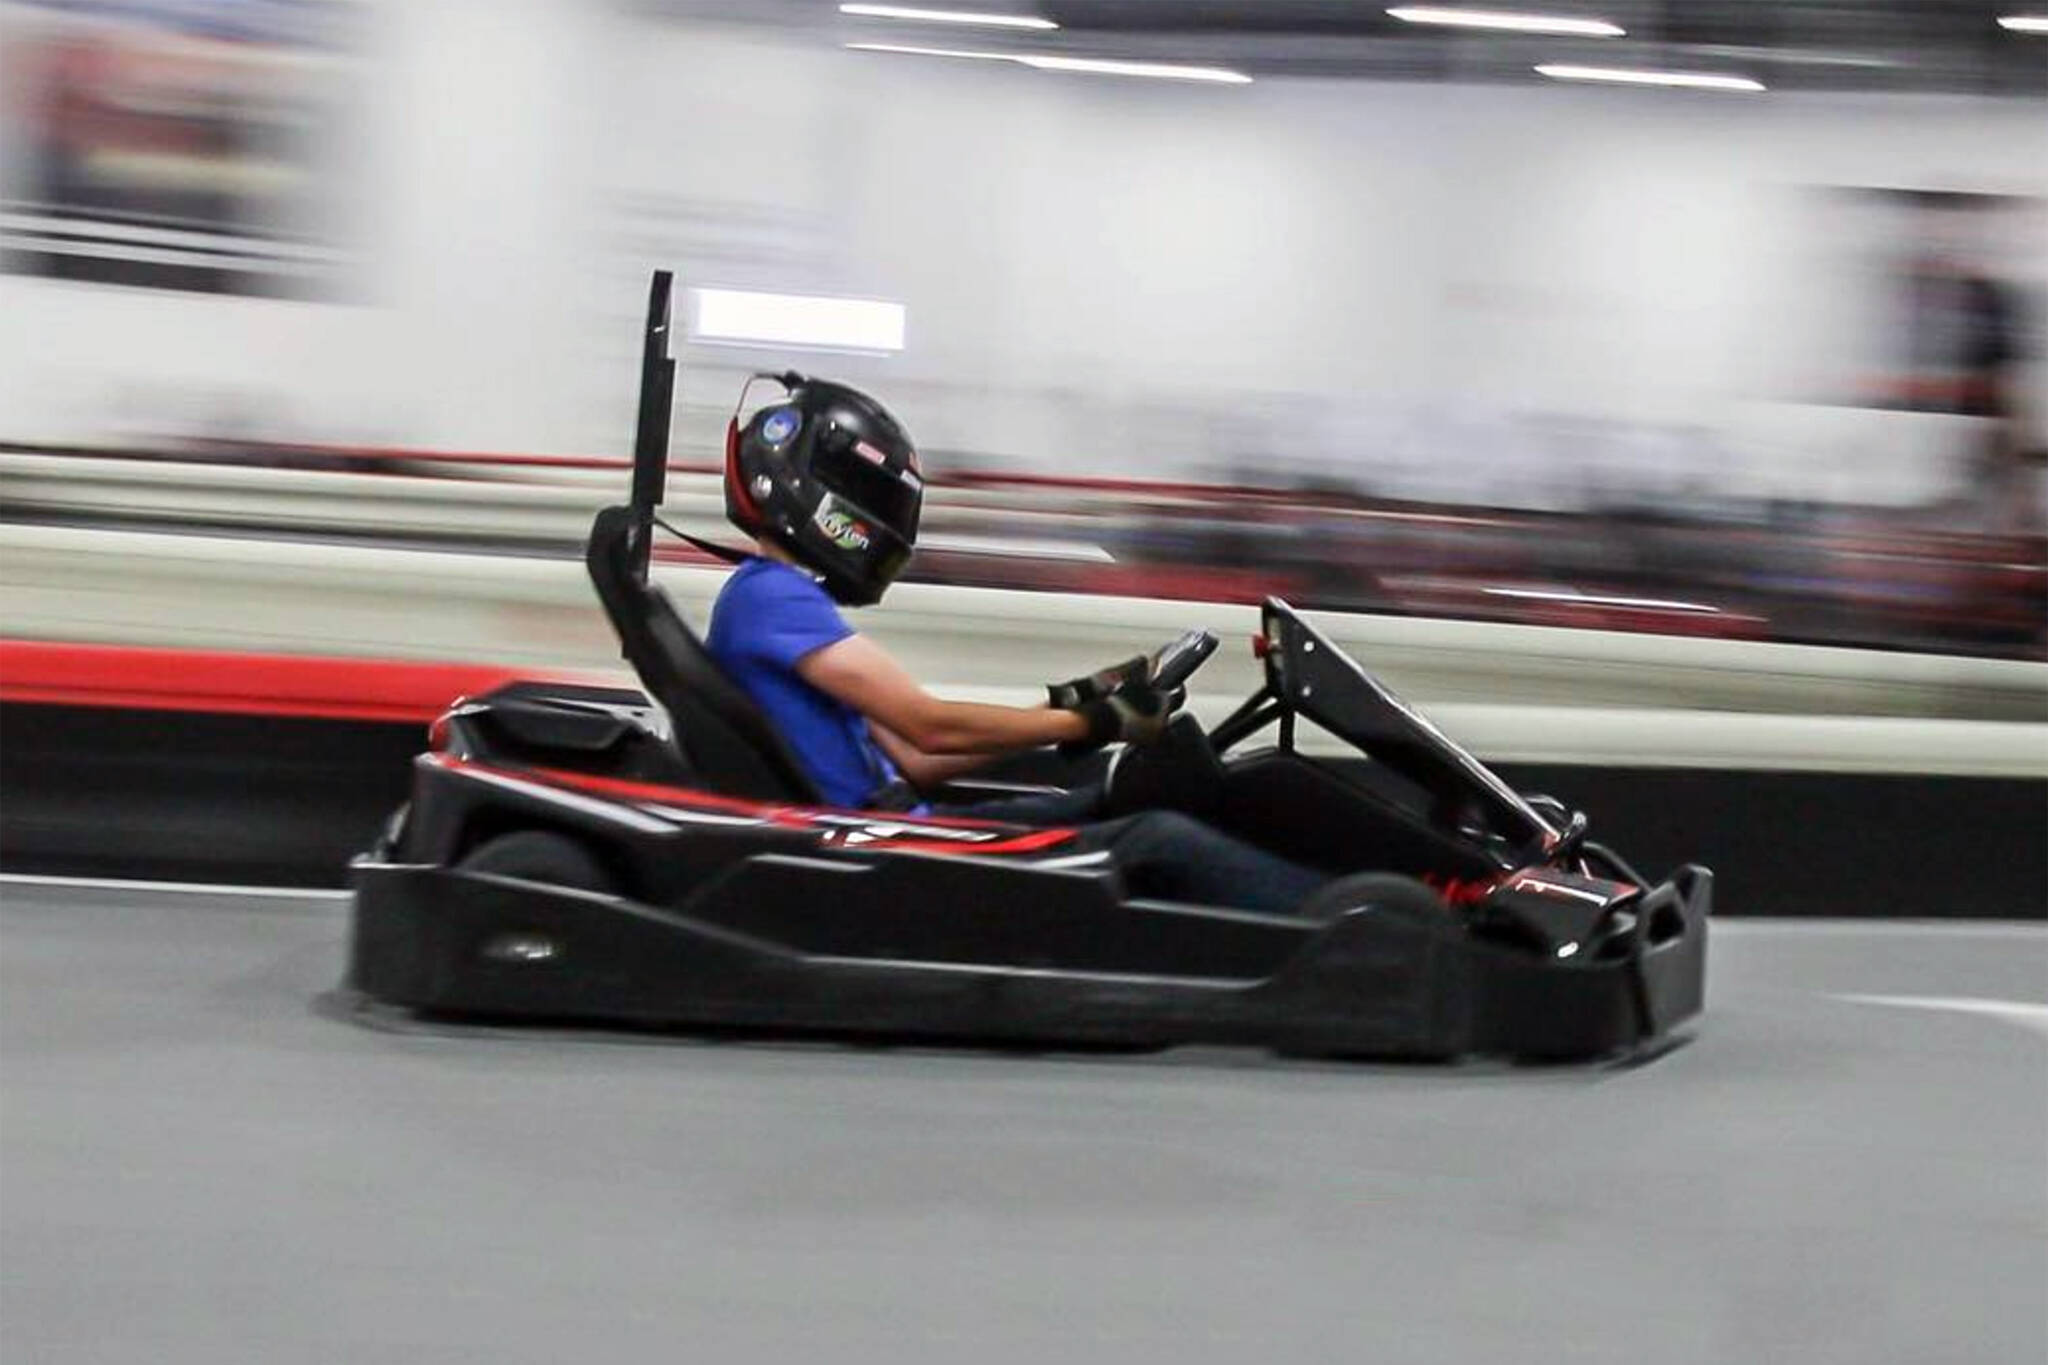 Arlington K1 Speed Arlington. The K1 Speed Arlington kart track is located near Six Flags Hurricane Harbor. Track offers arrive and drive indoor go kart racing 7 days a week with no reservations required.